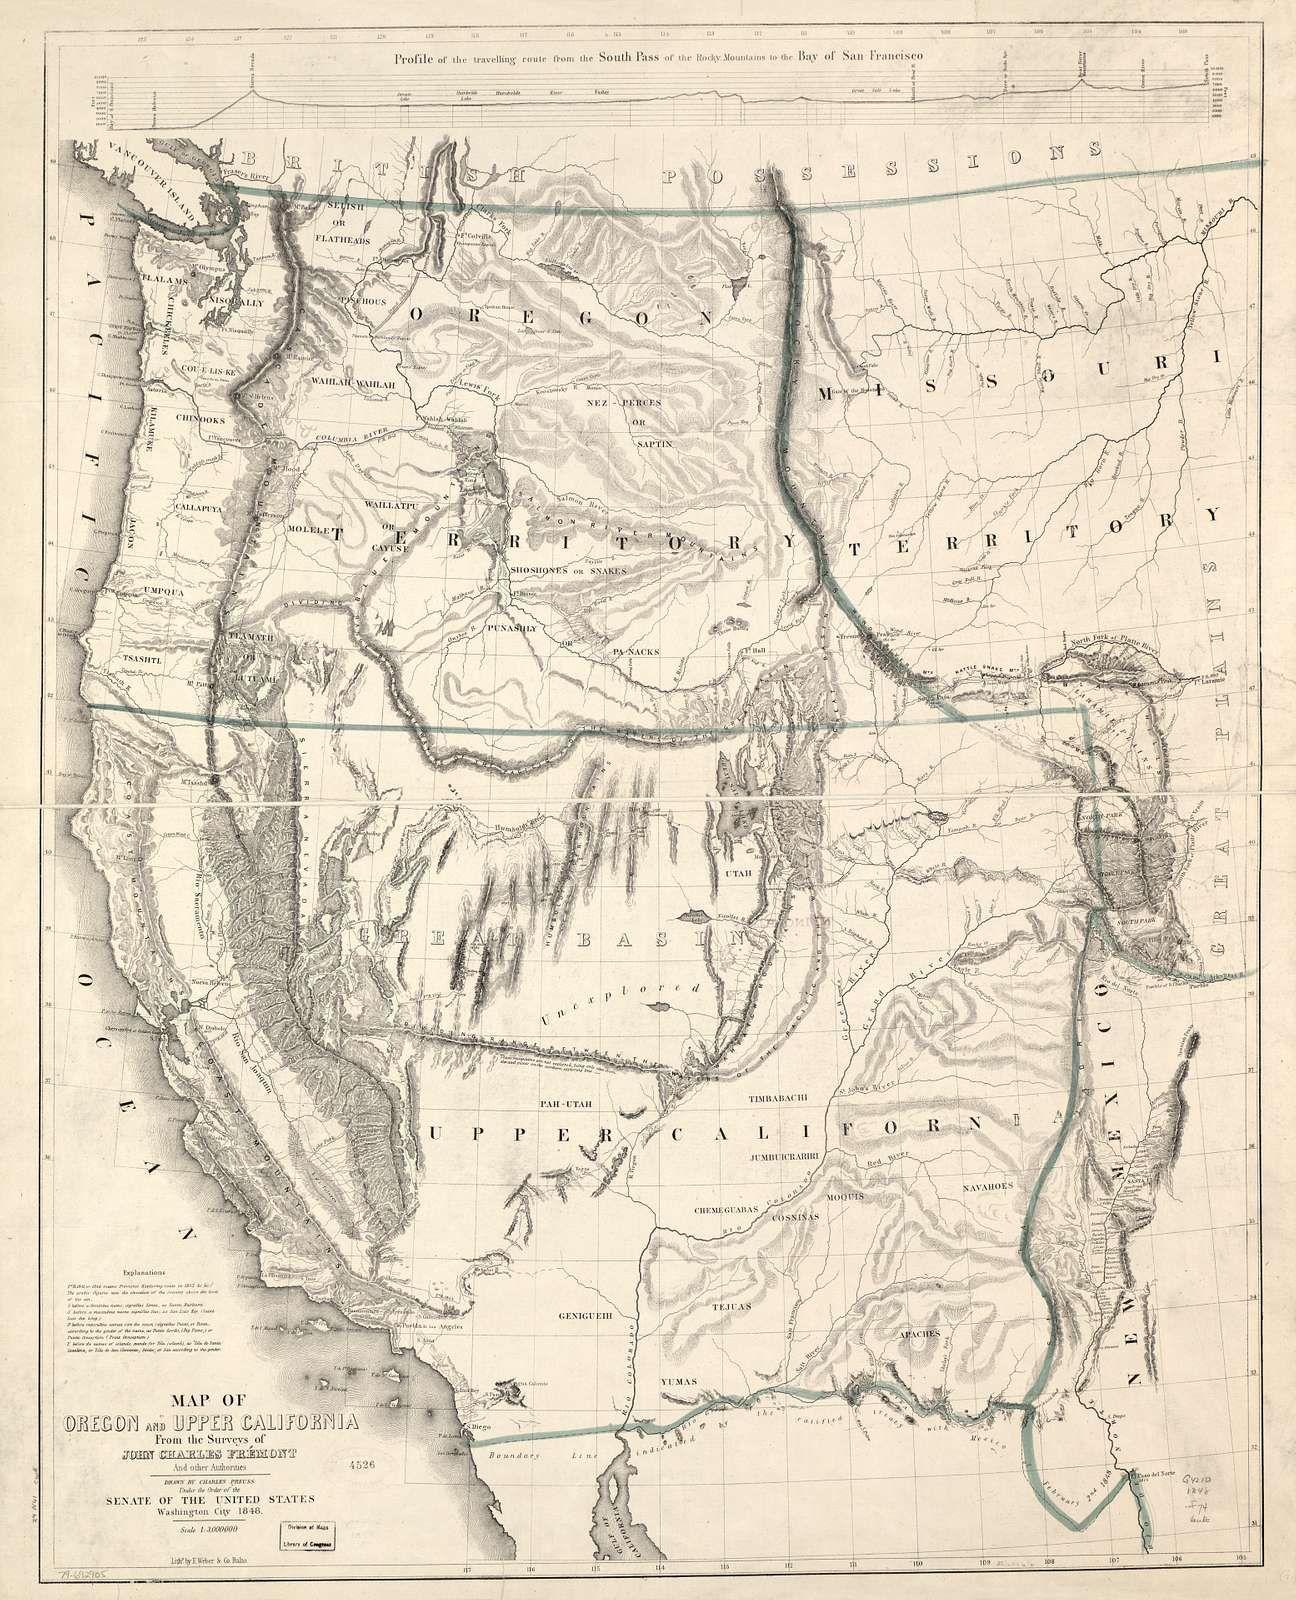 Map of Oregon and upper California from the surveys of John Charles Frémont and other authorities /